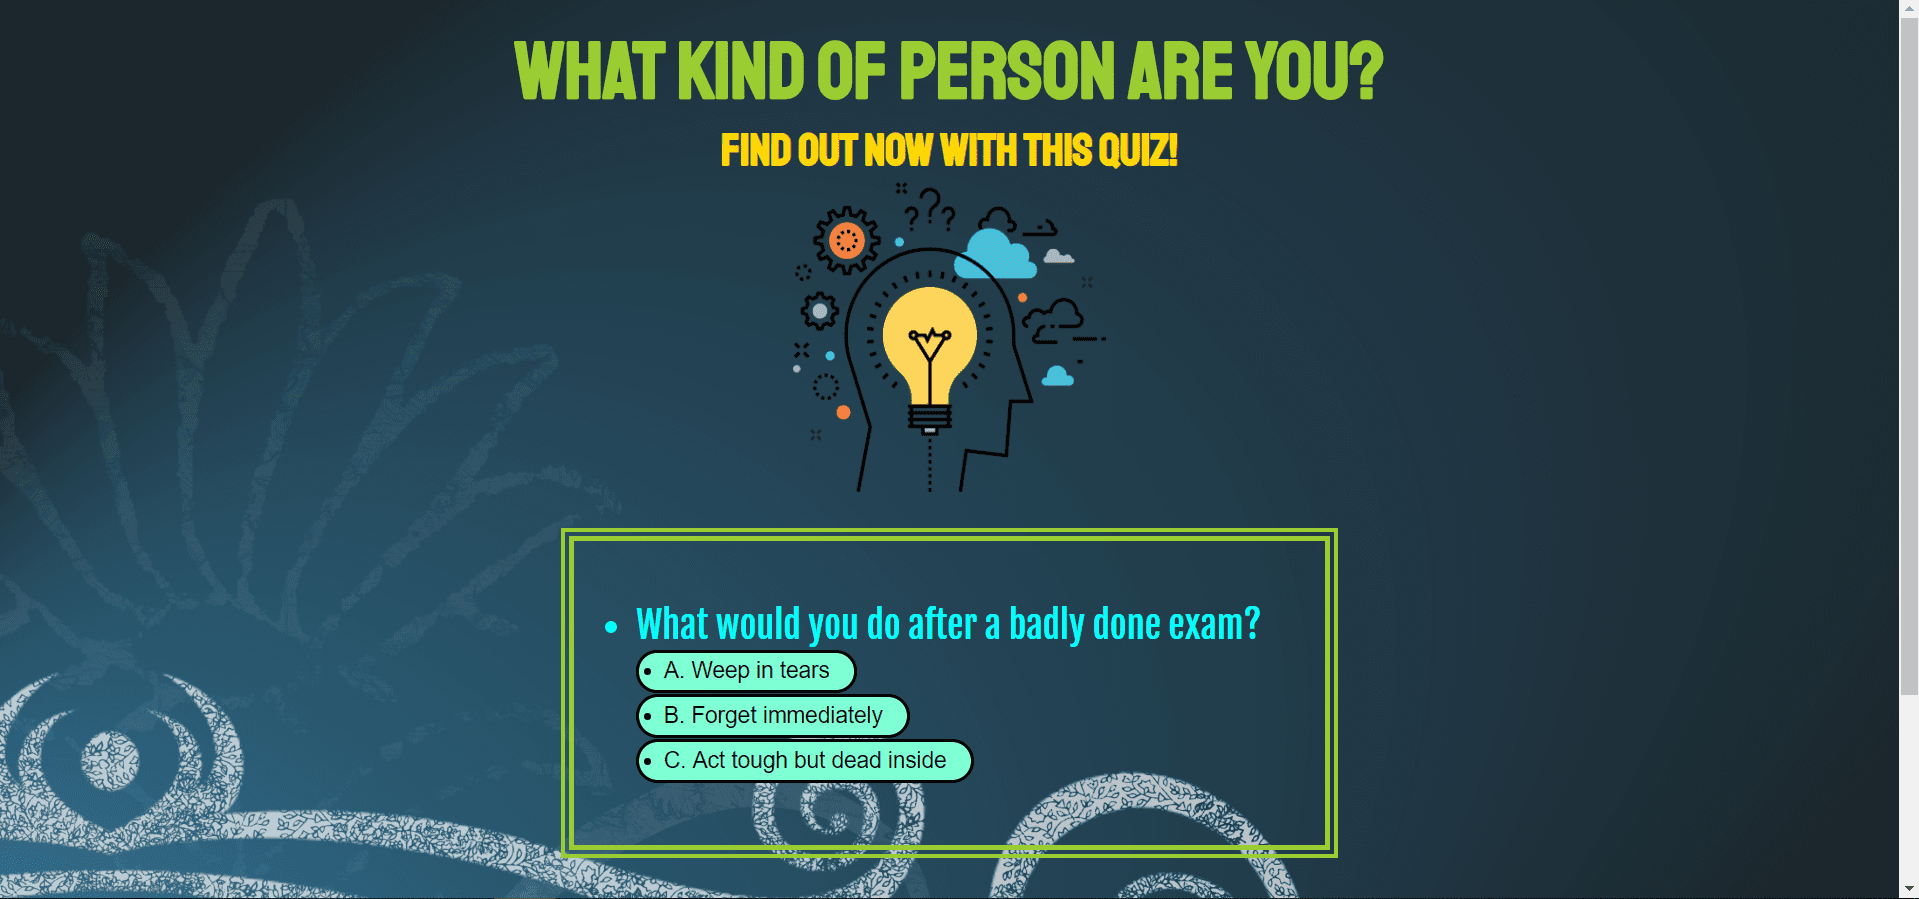 WHAT KIND OF PERSON ARE YOU? FIND OUT NOW WITH THIS QUIZ!